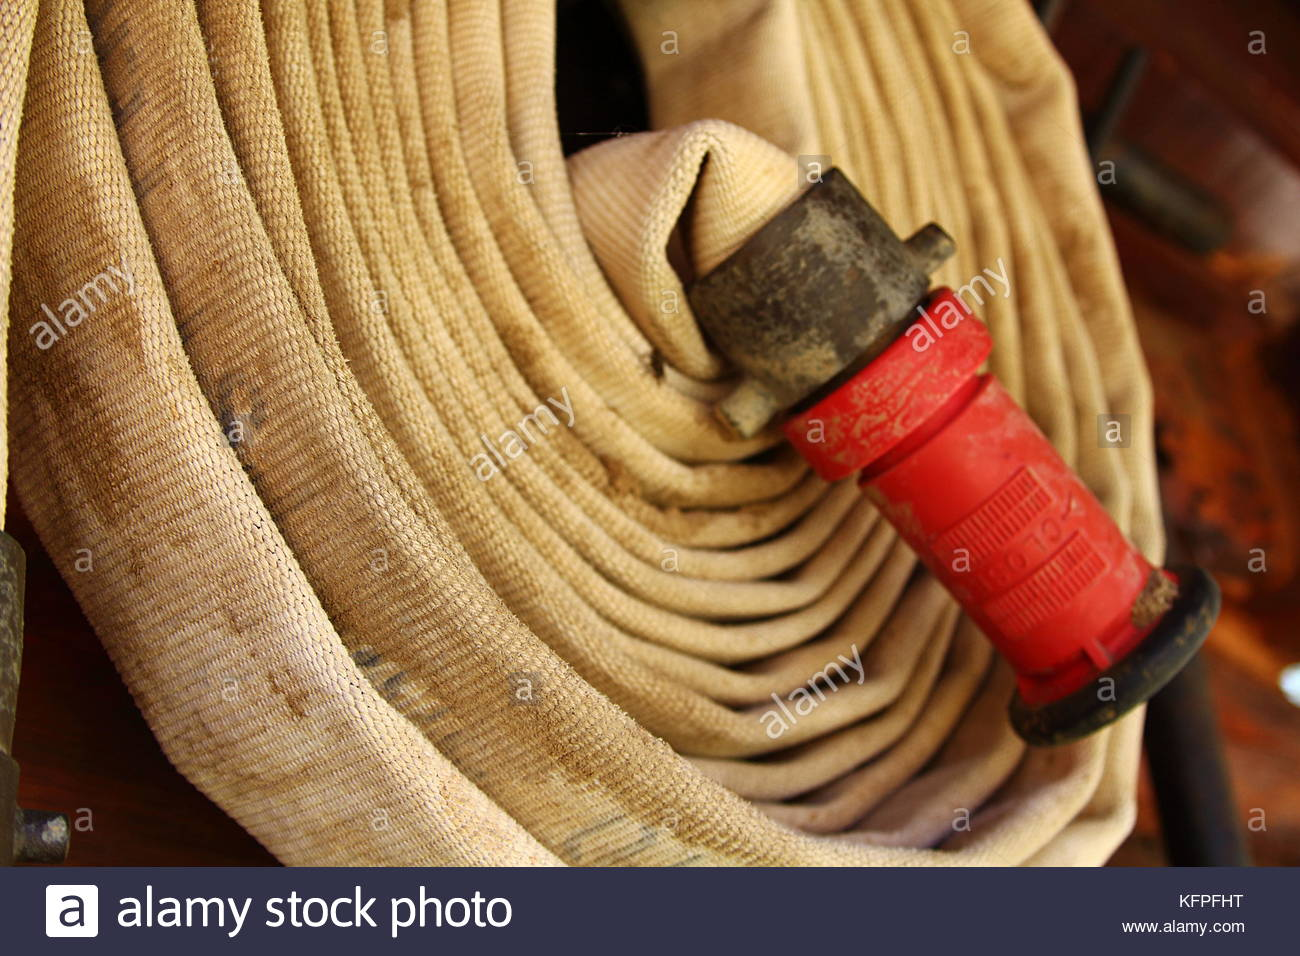 Rolled firehose ready for use - Stock Image